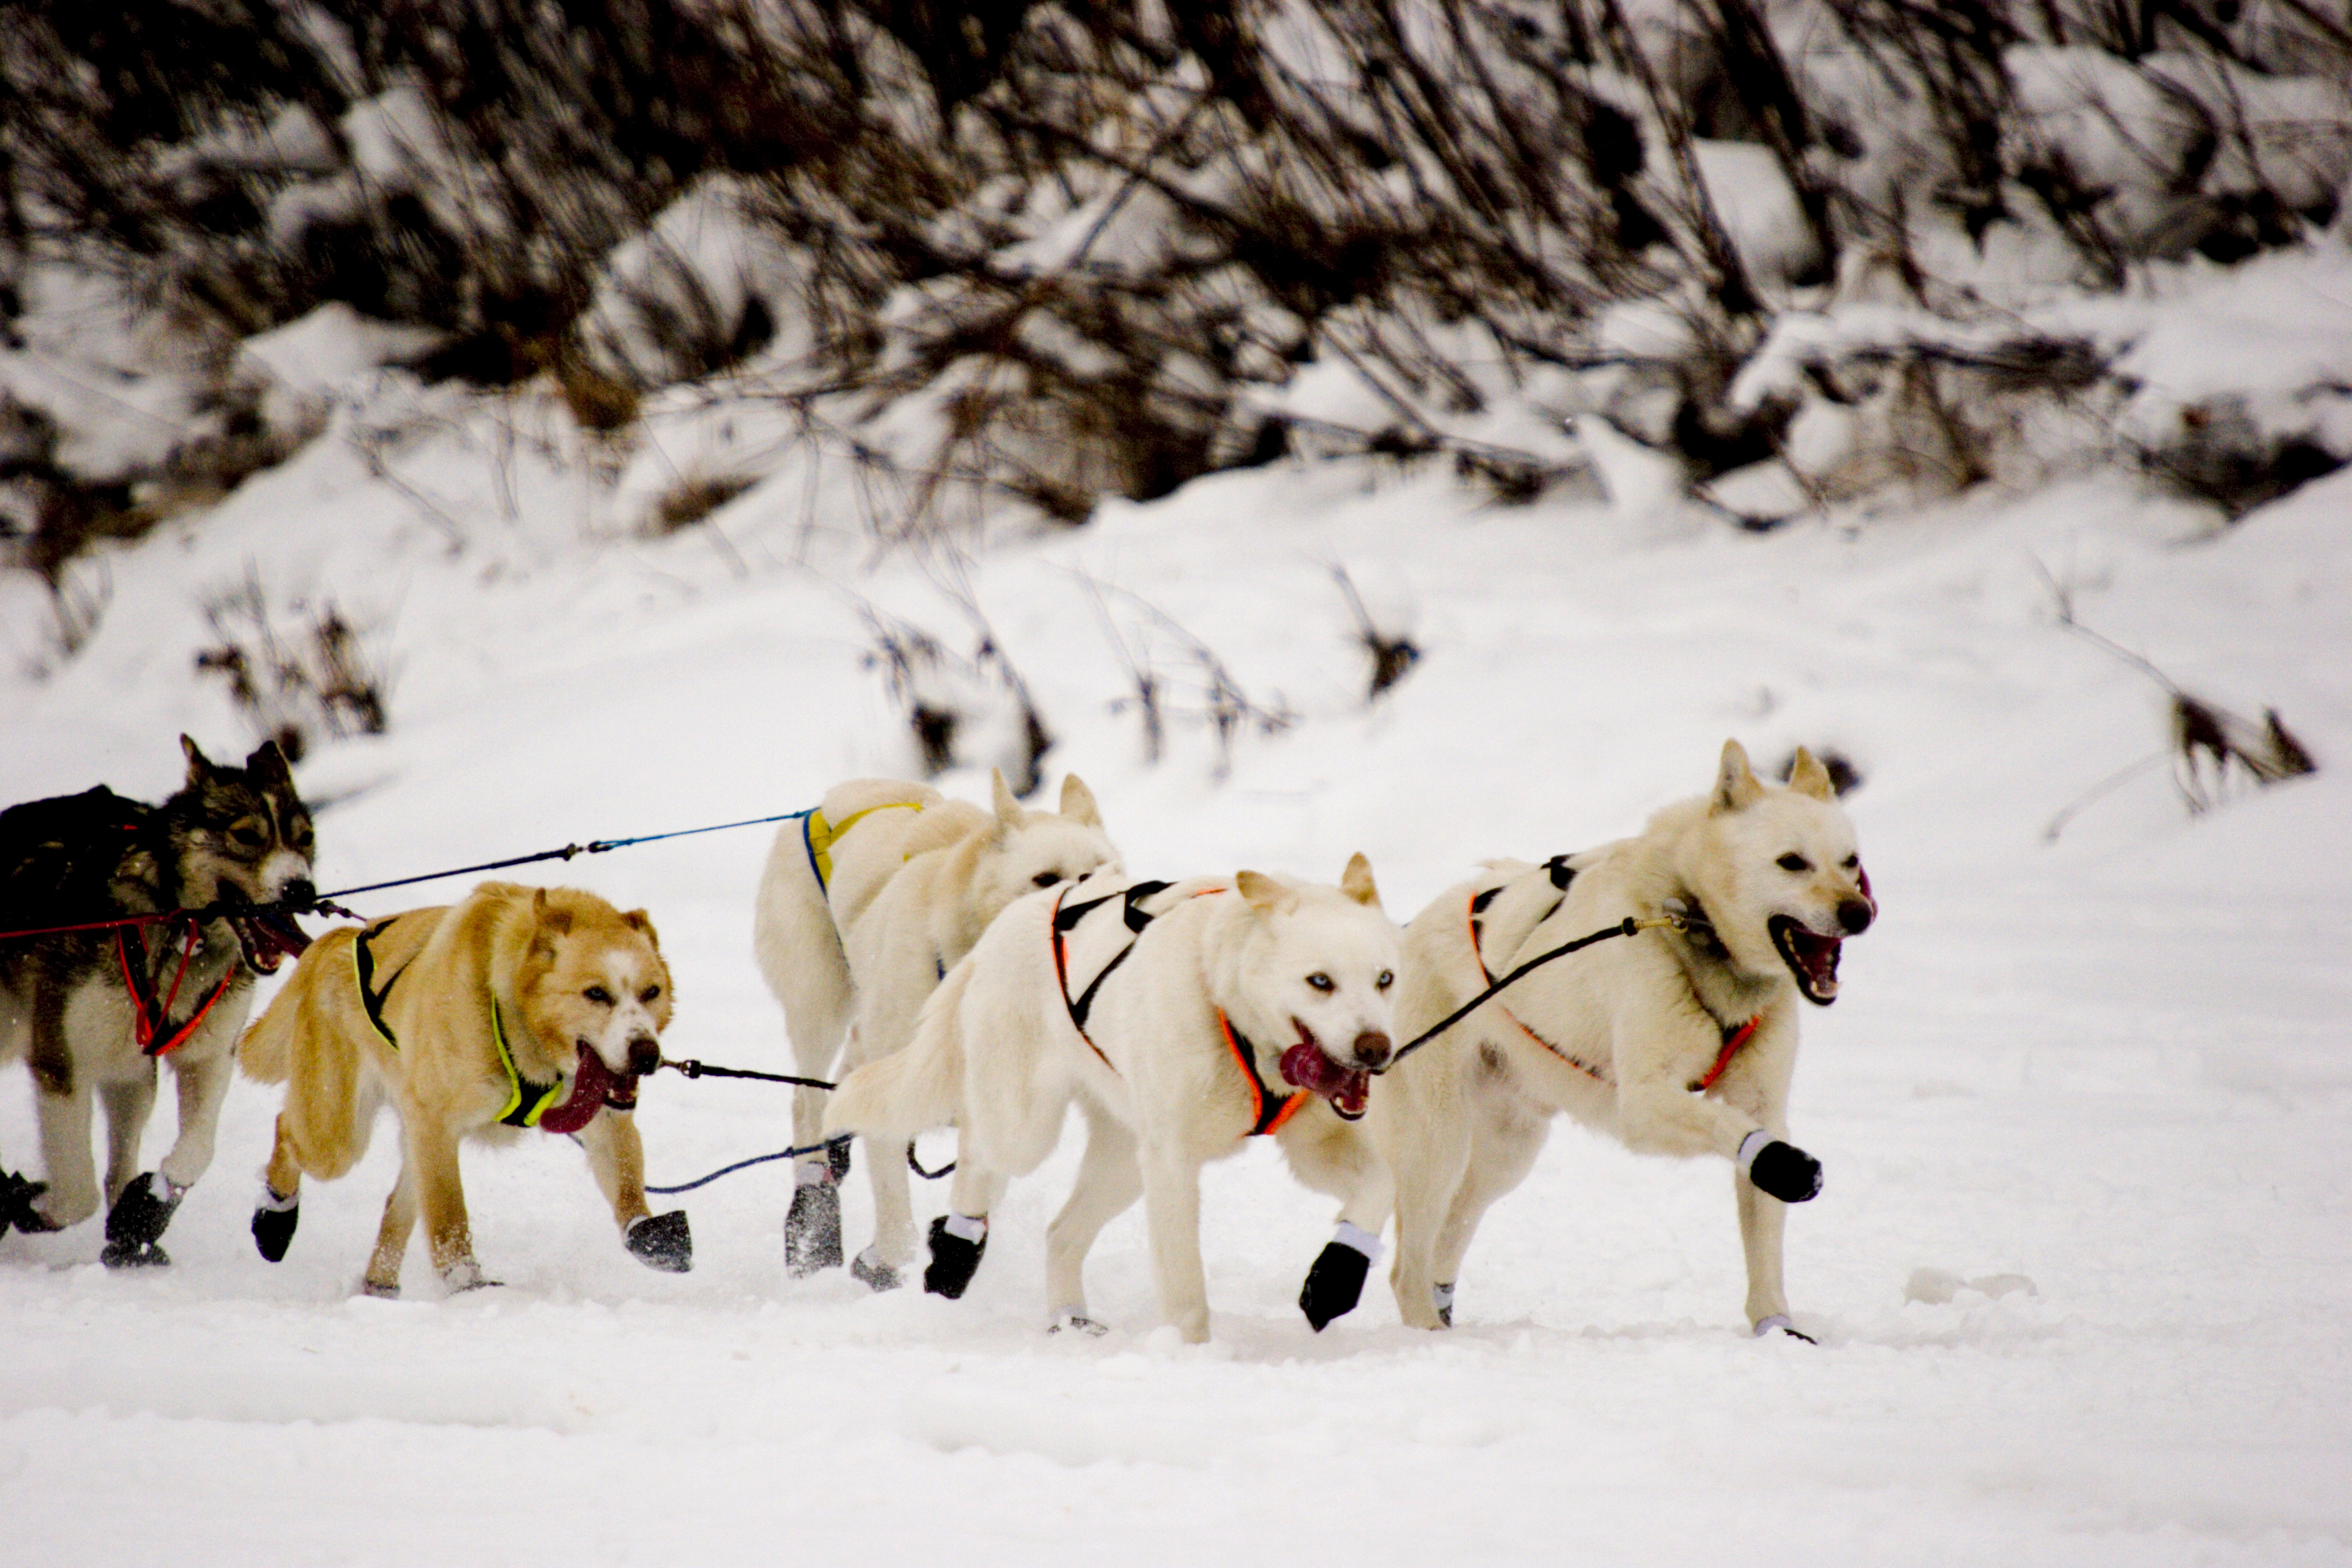 Husky sleds provide an excelltn travel experience through the Yukon winter